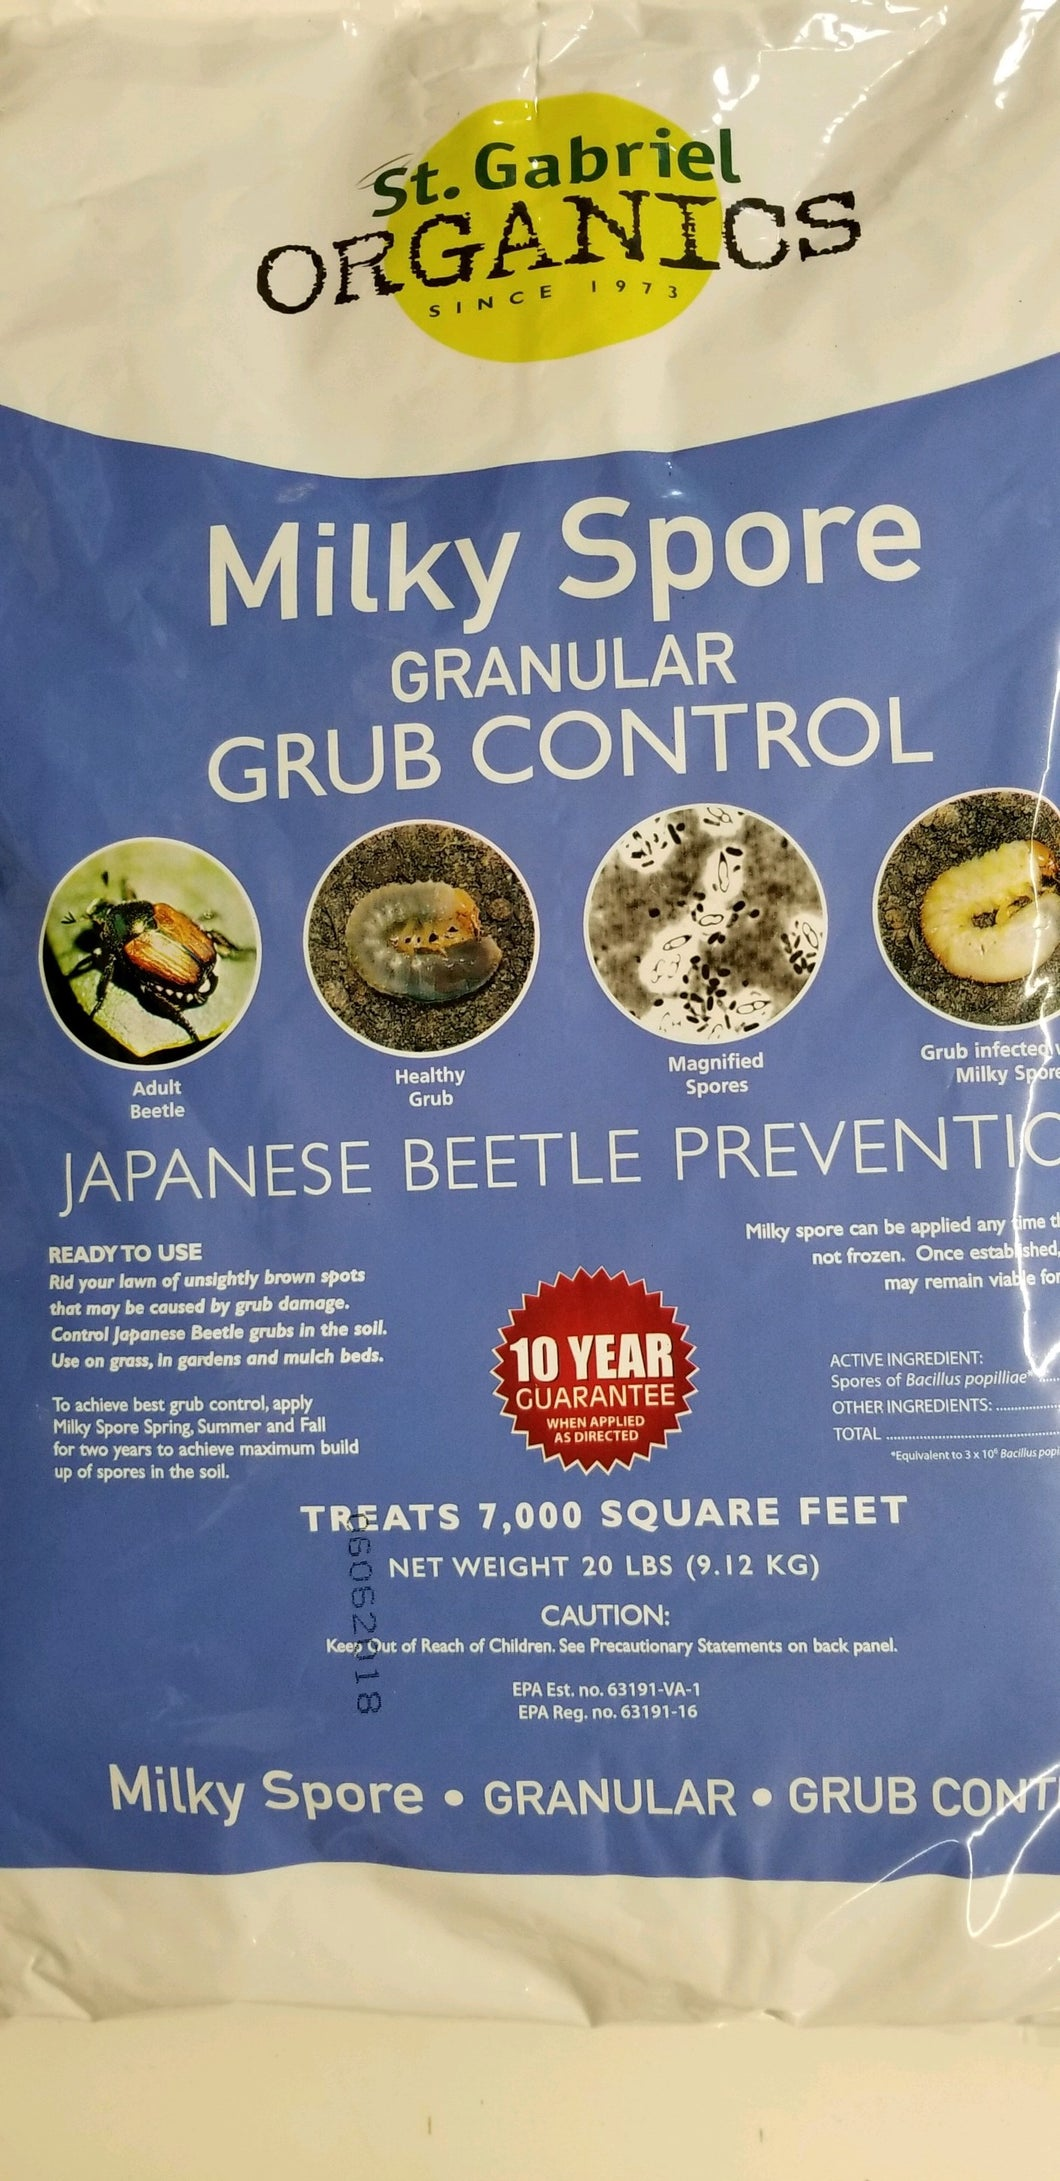 Milky Spore Granular Grub Control-10 Year Guarantee When Applied As Directed!